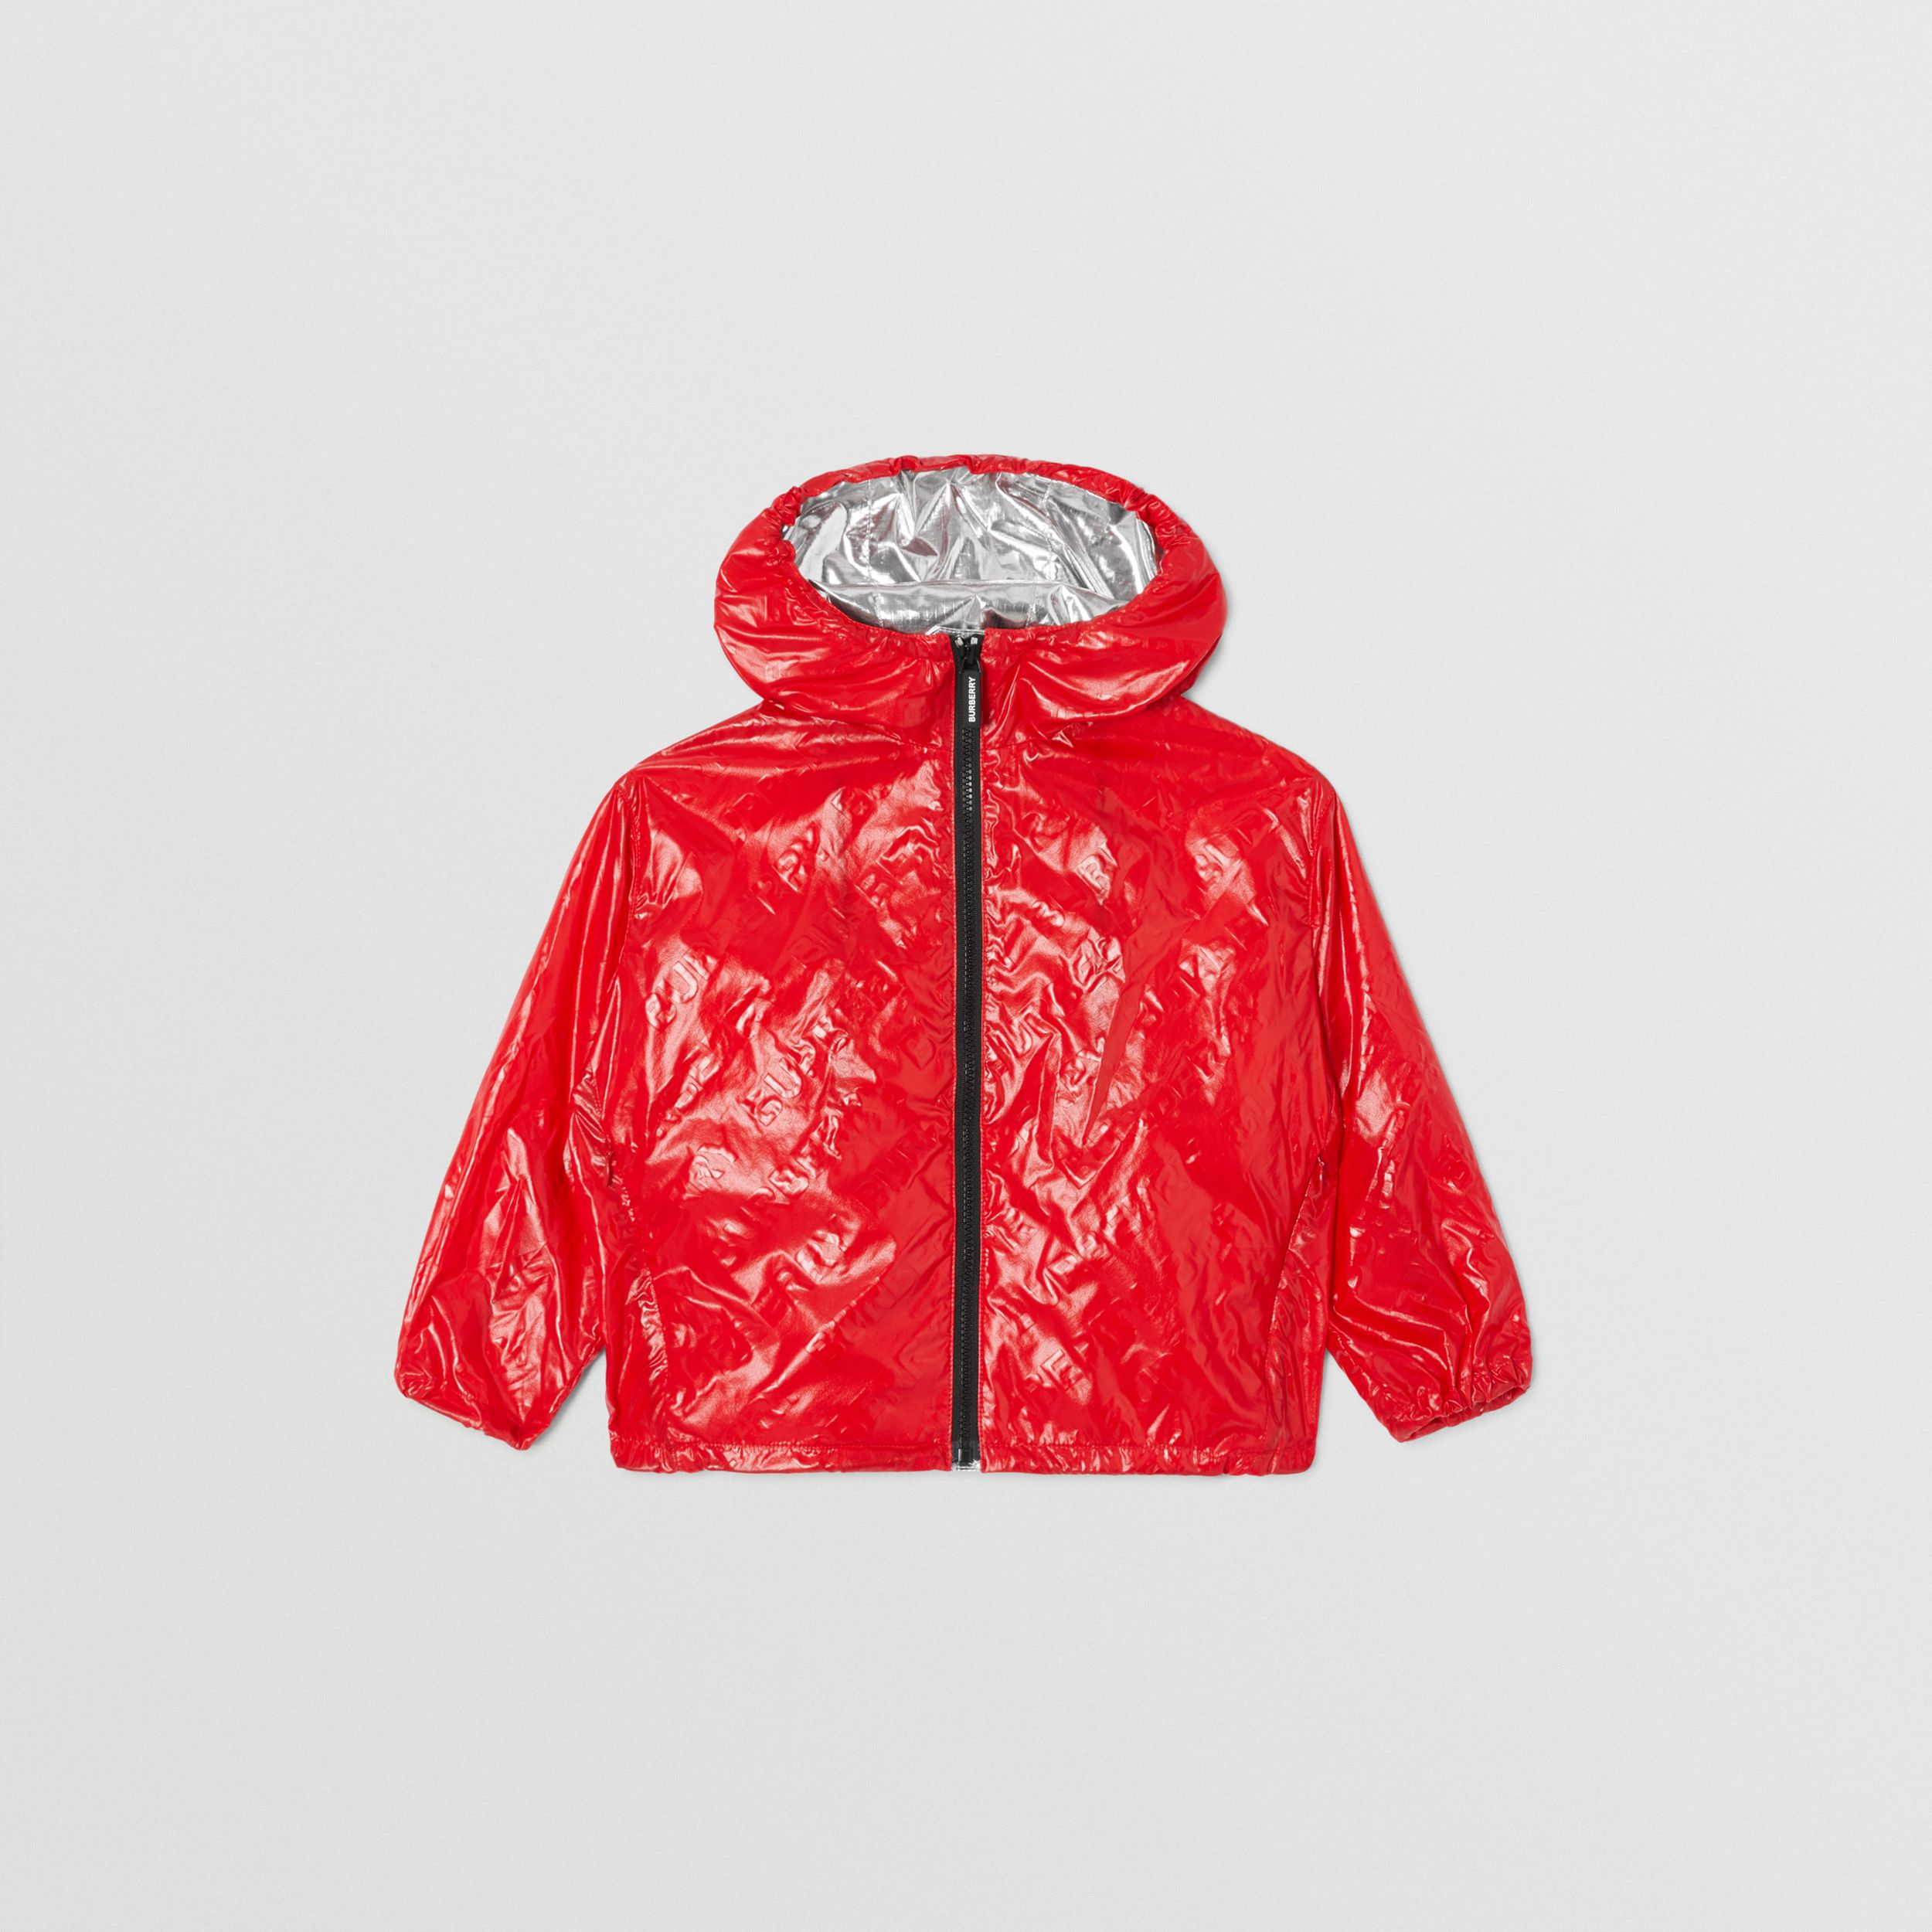 Logo Print Lightweight Hooded Jacket in Bright Red | Burberry - 1